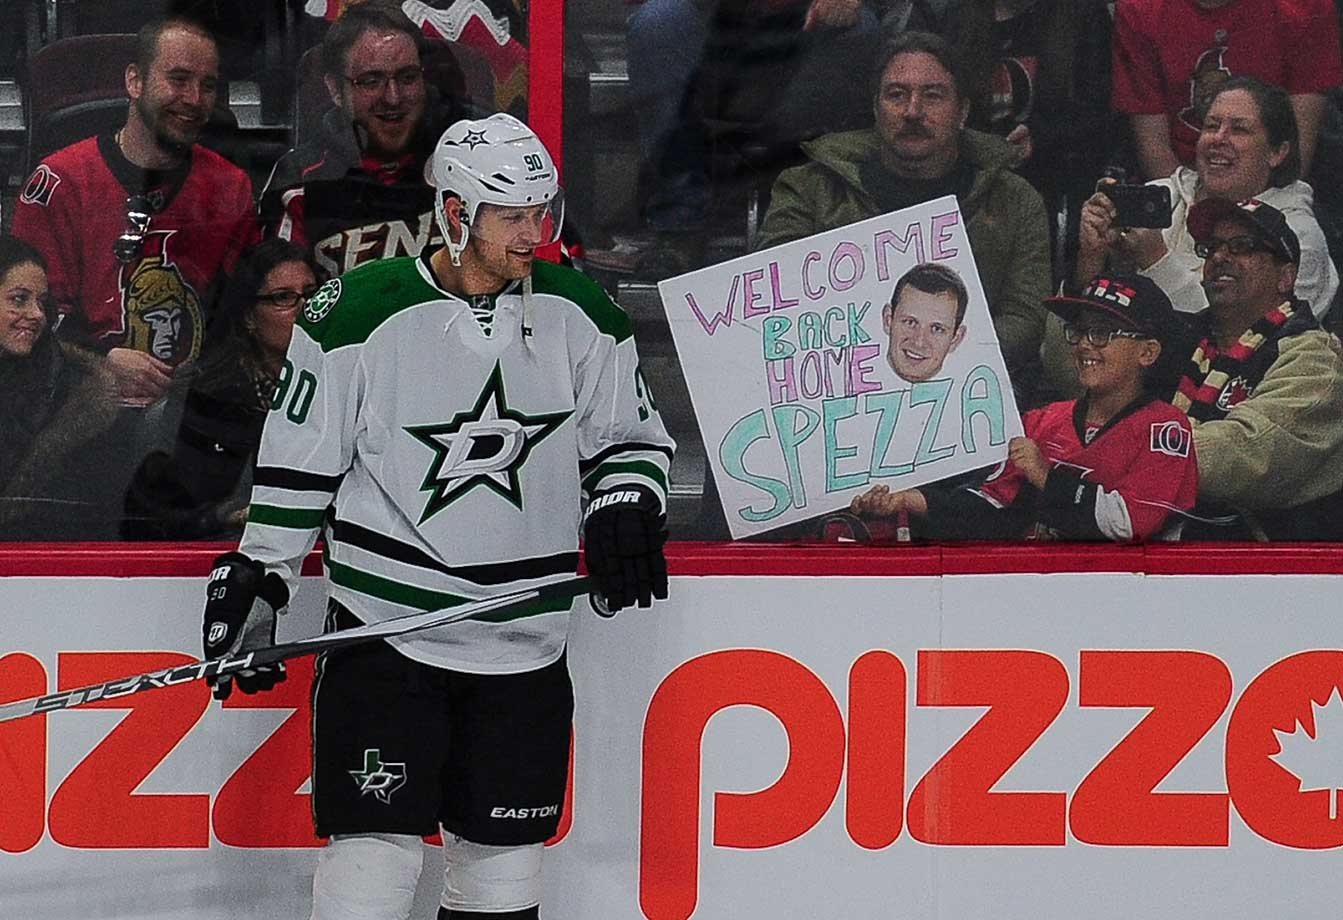 A young Sens fan holds up a poster for Dallas Stars center Jason Spezza in Ottawa, Ontario, Canada.